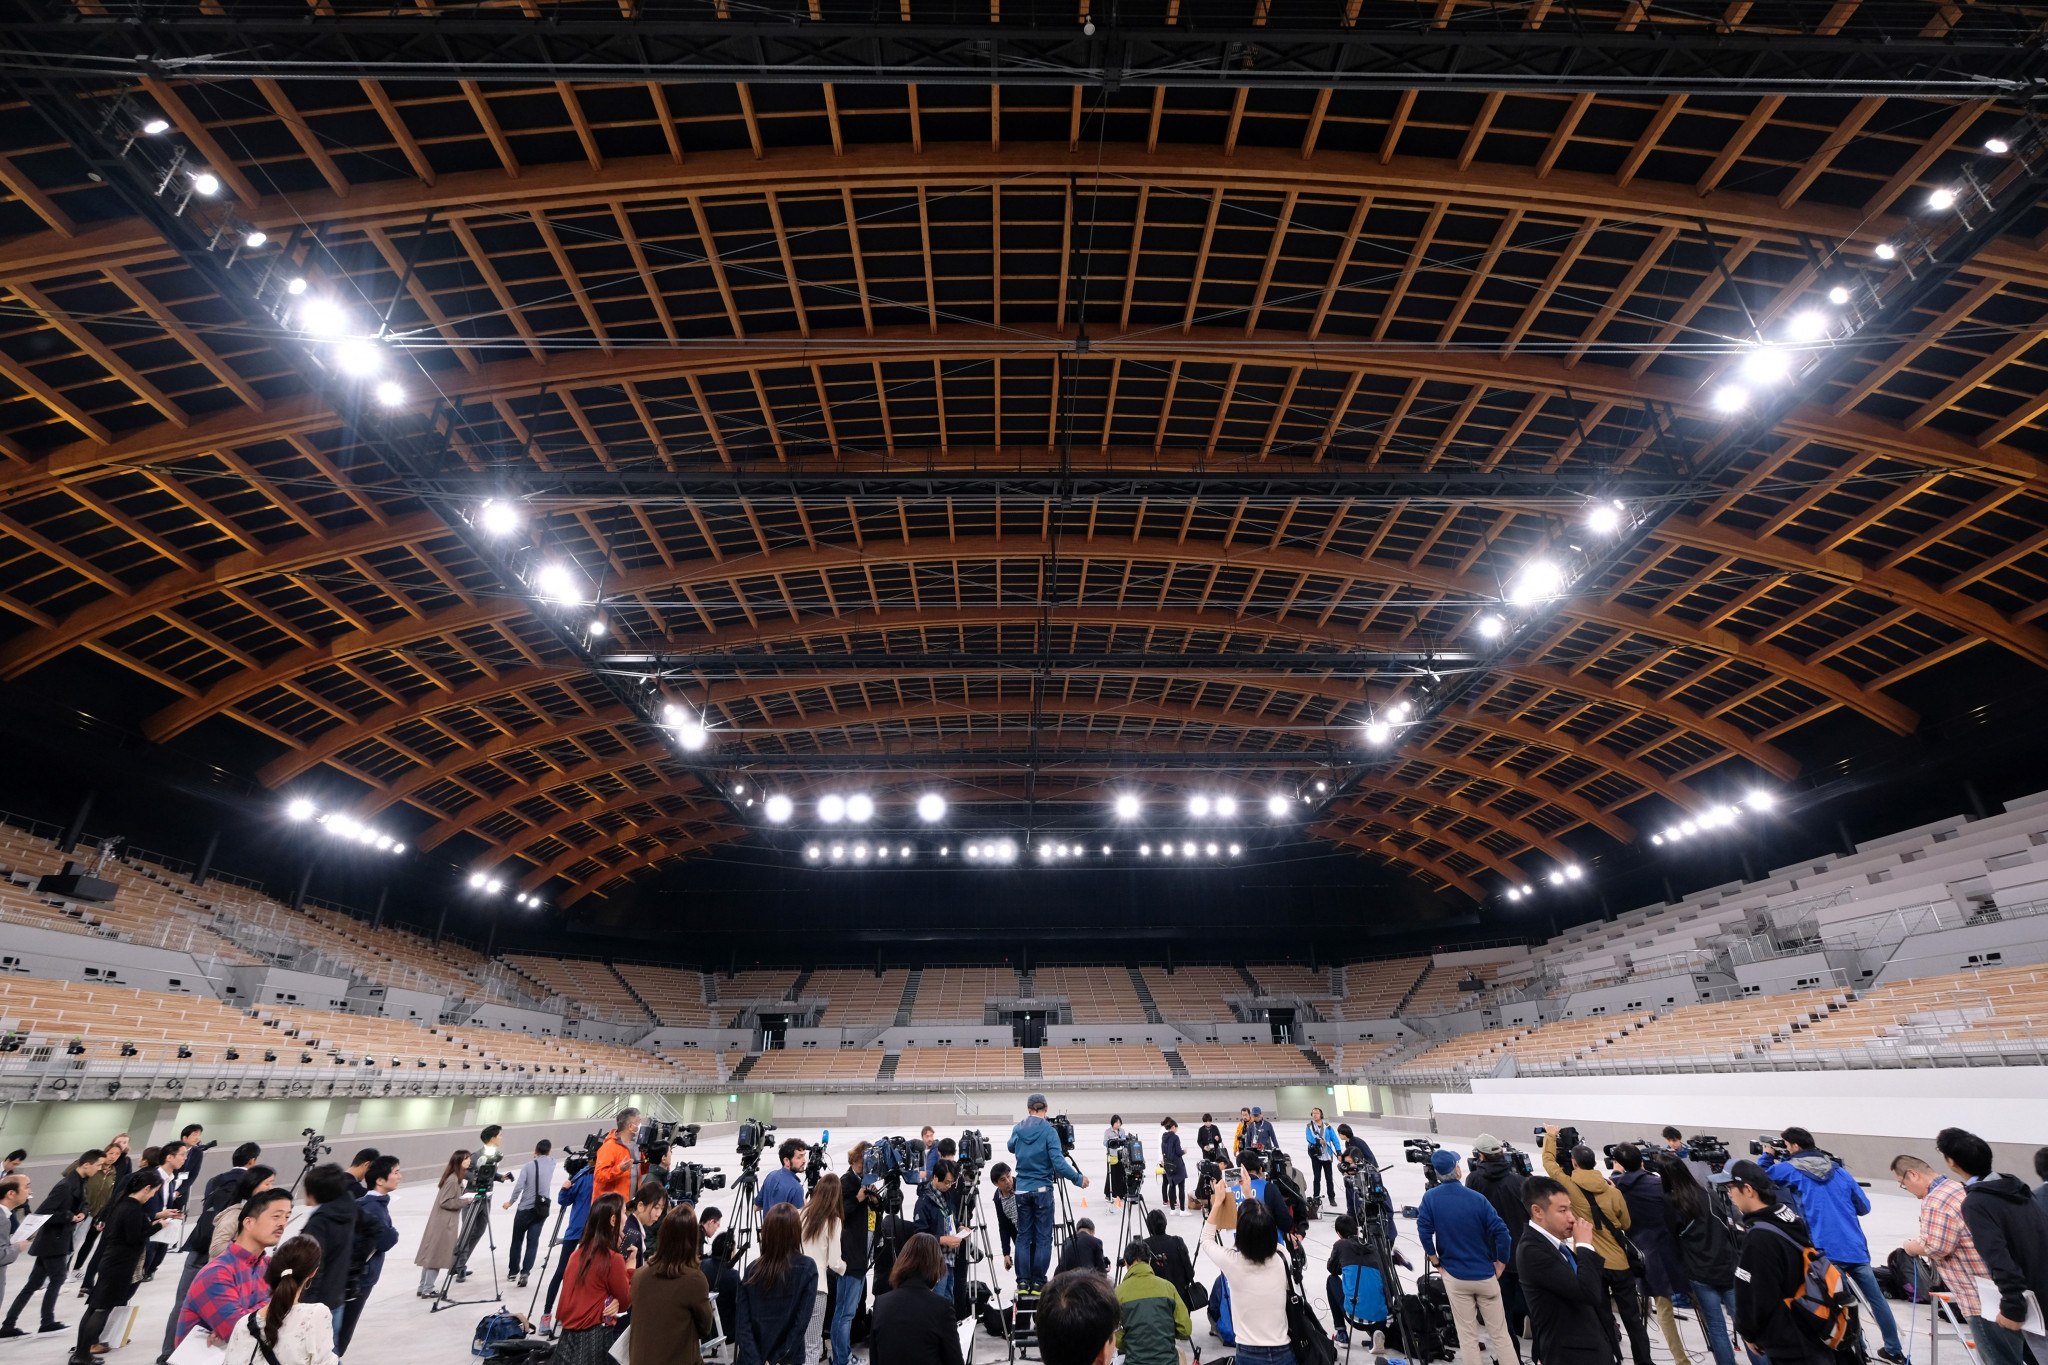 Tokyo 2020 have unveiled the completed Ariake Gymnastics Centre ©Getty Images